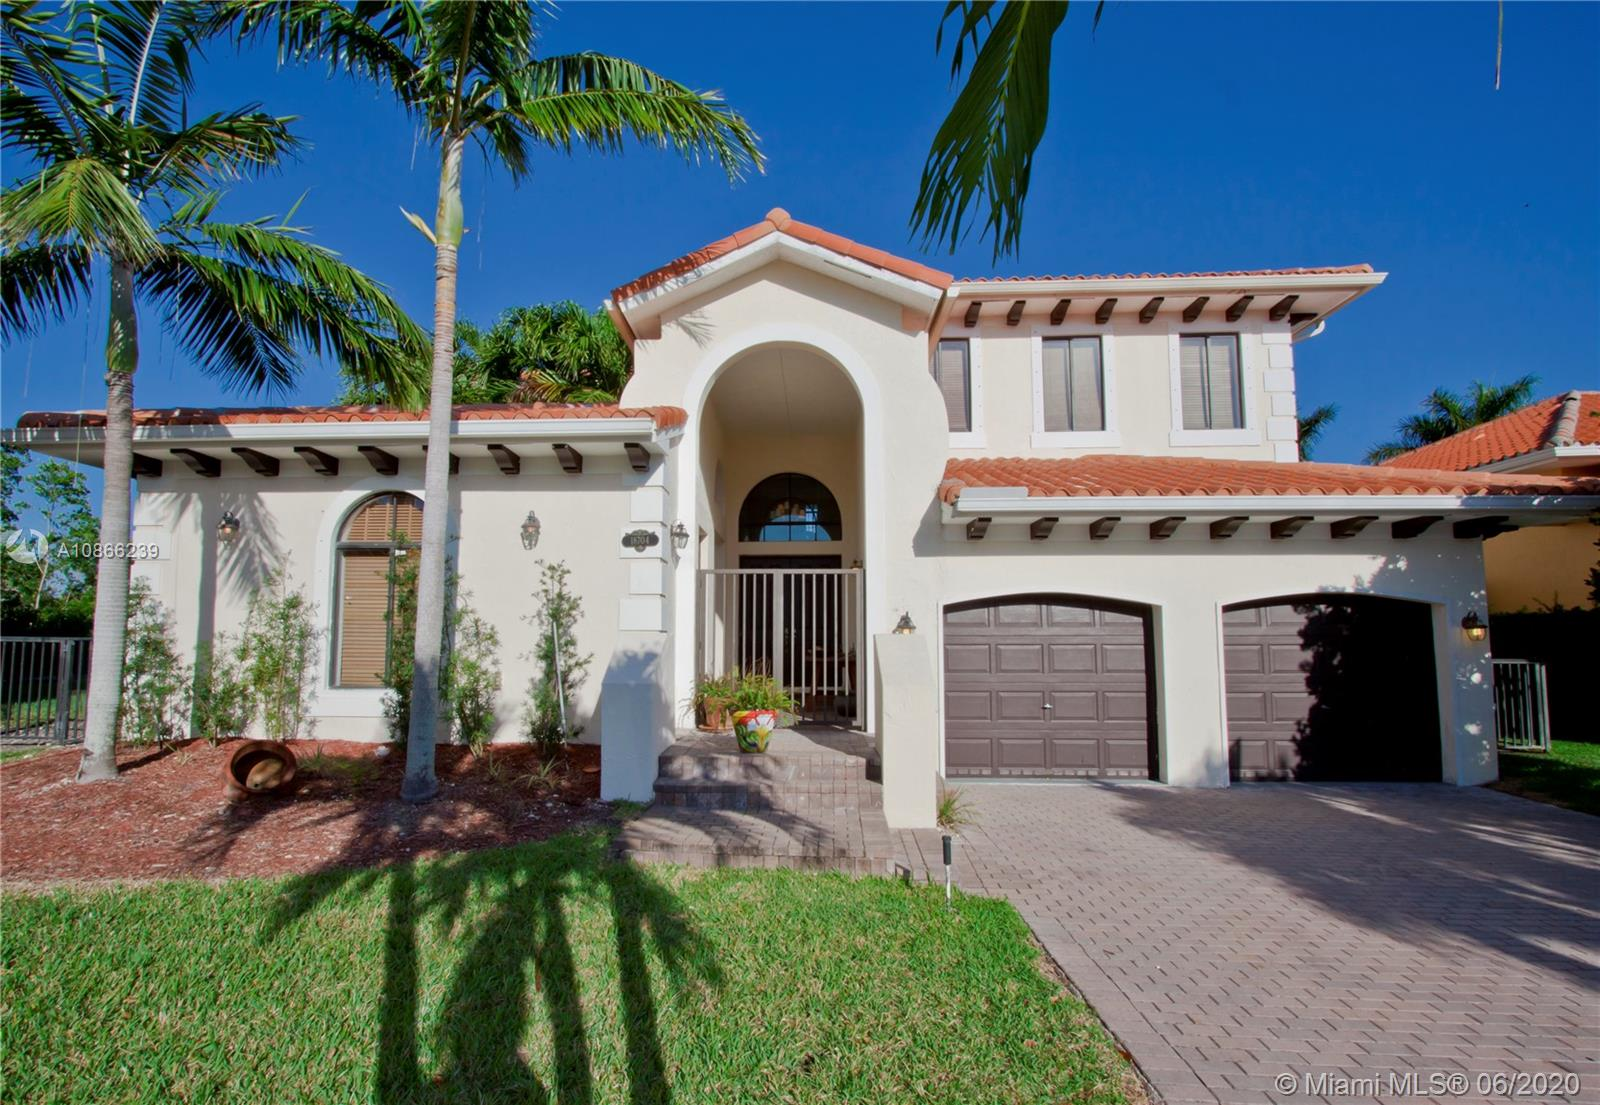 18704 SW 76th Ct.  For Sale A10866239, FL